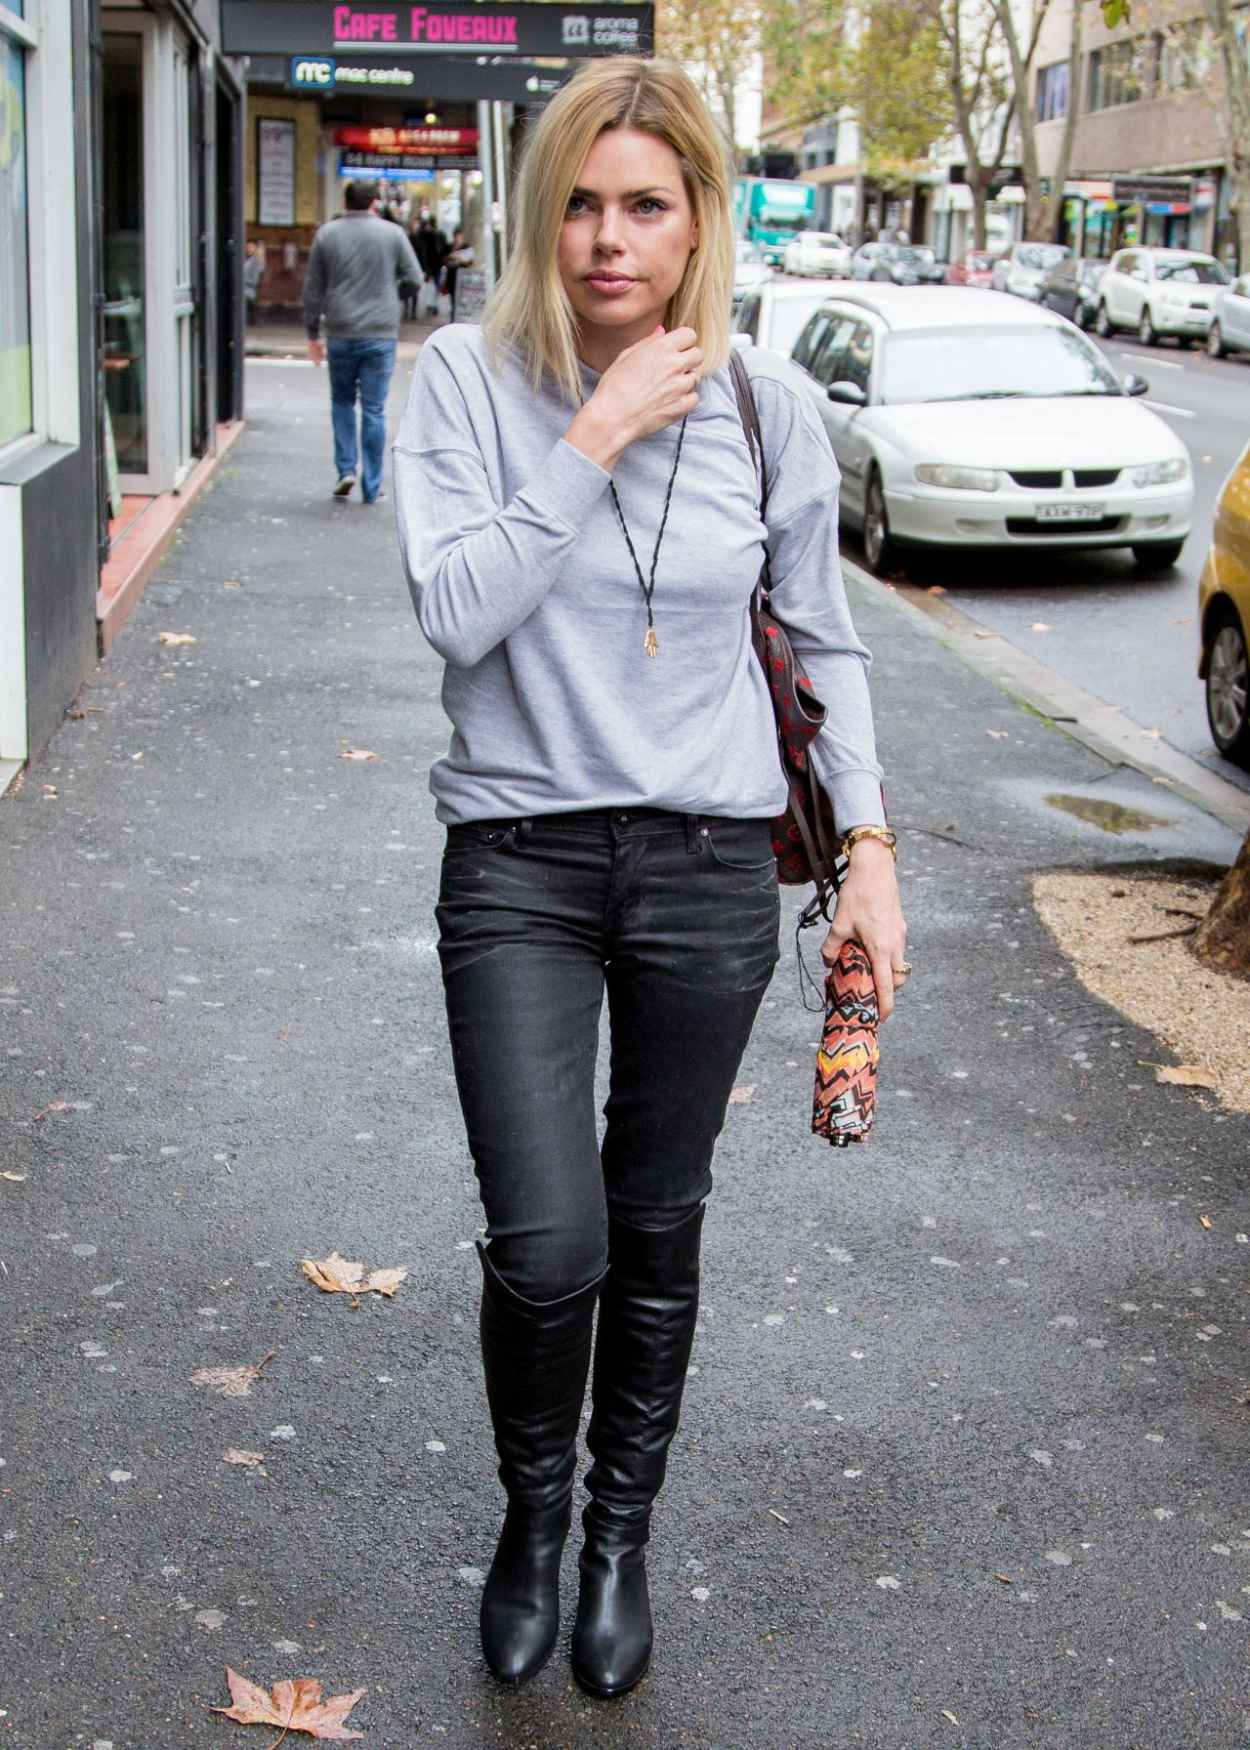 Sophie Monk Street Style - Rainy Day in Sydney, Australia, April 2015-3